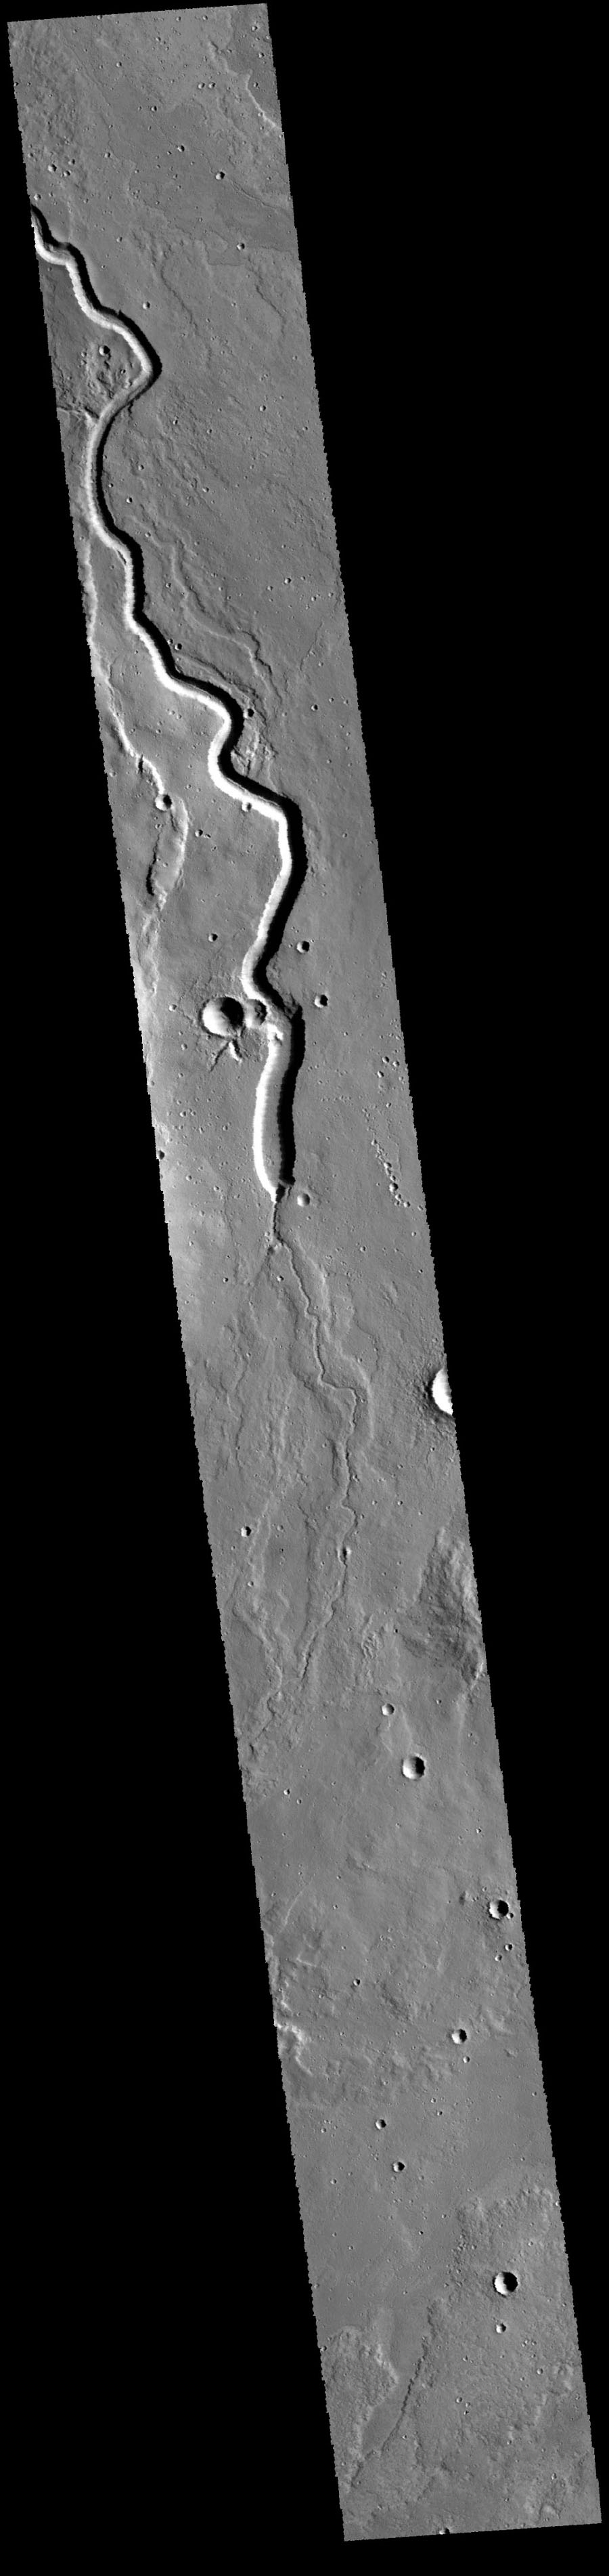 This image captured by NASA's 2001 Mars Odyssey spacecraft looks like a slithering snake on Mars.